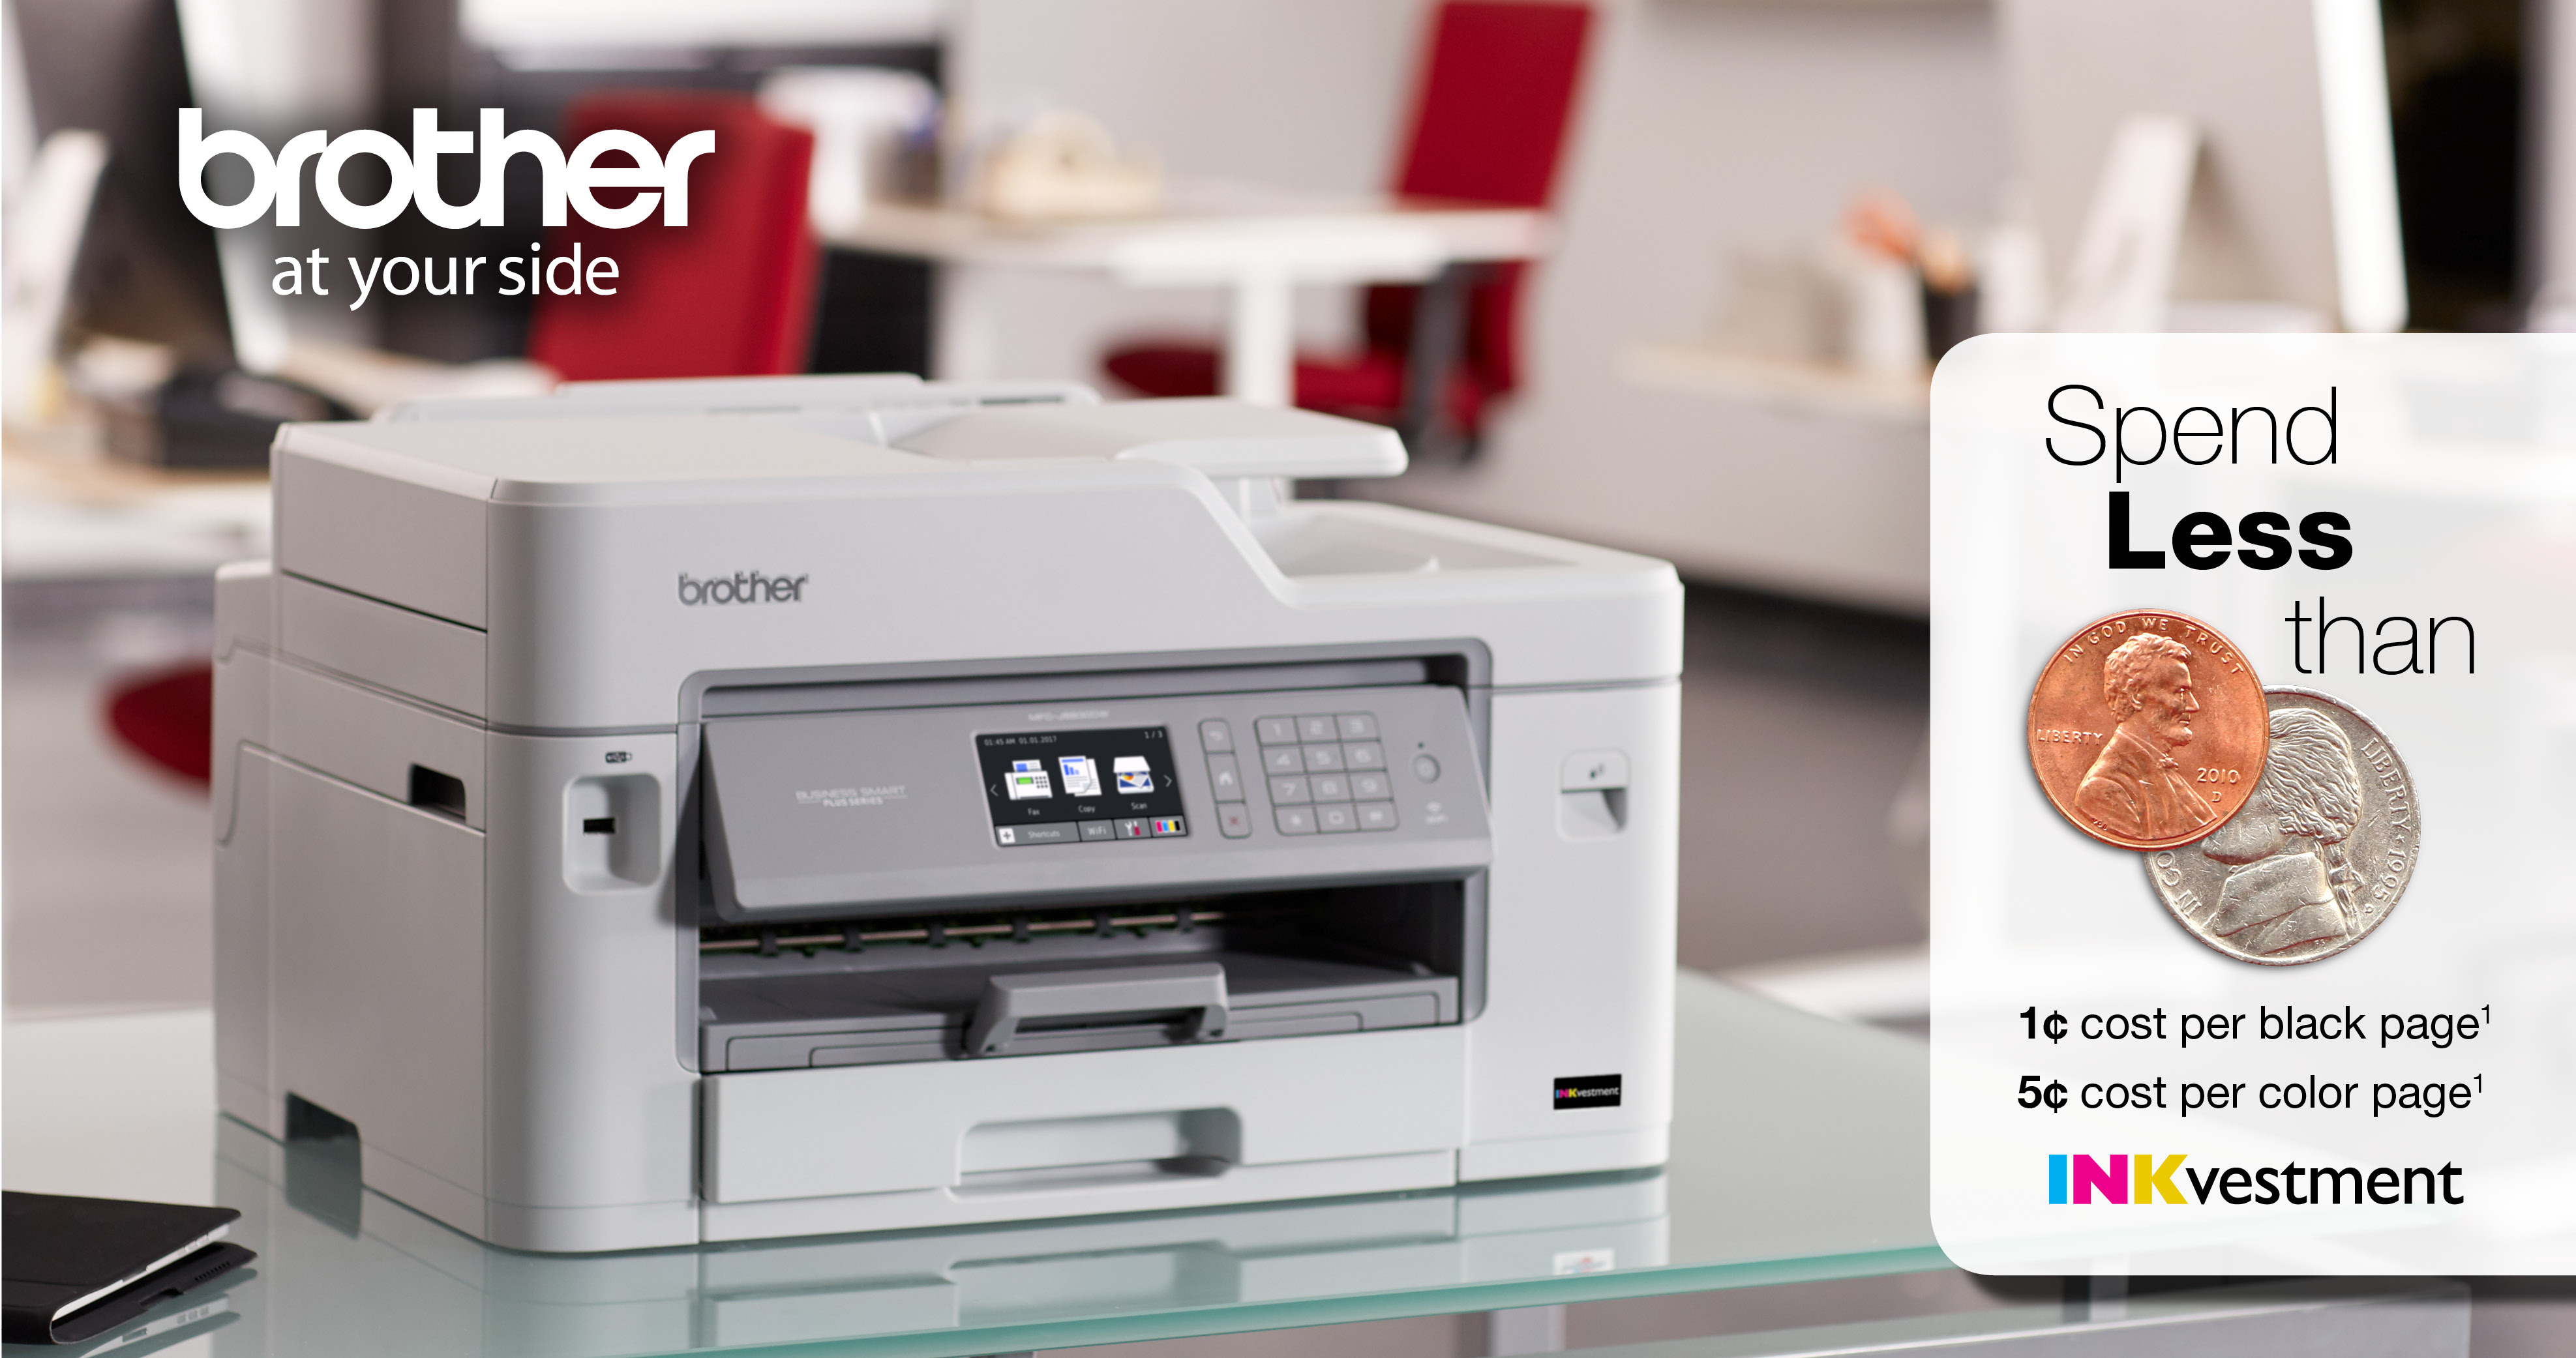 Color printing office depot - Brother Inkvestment Printers